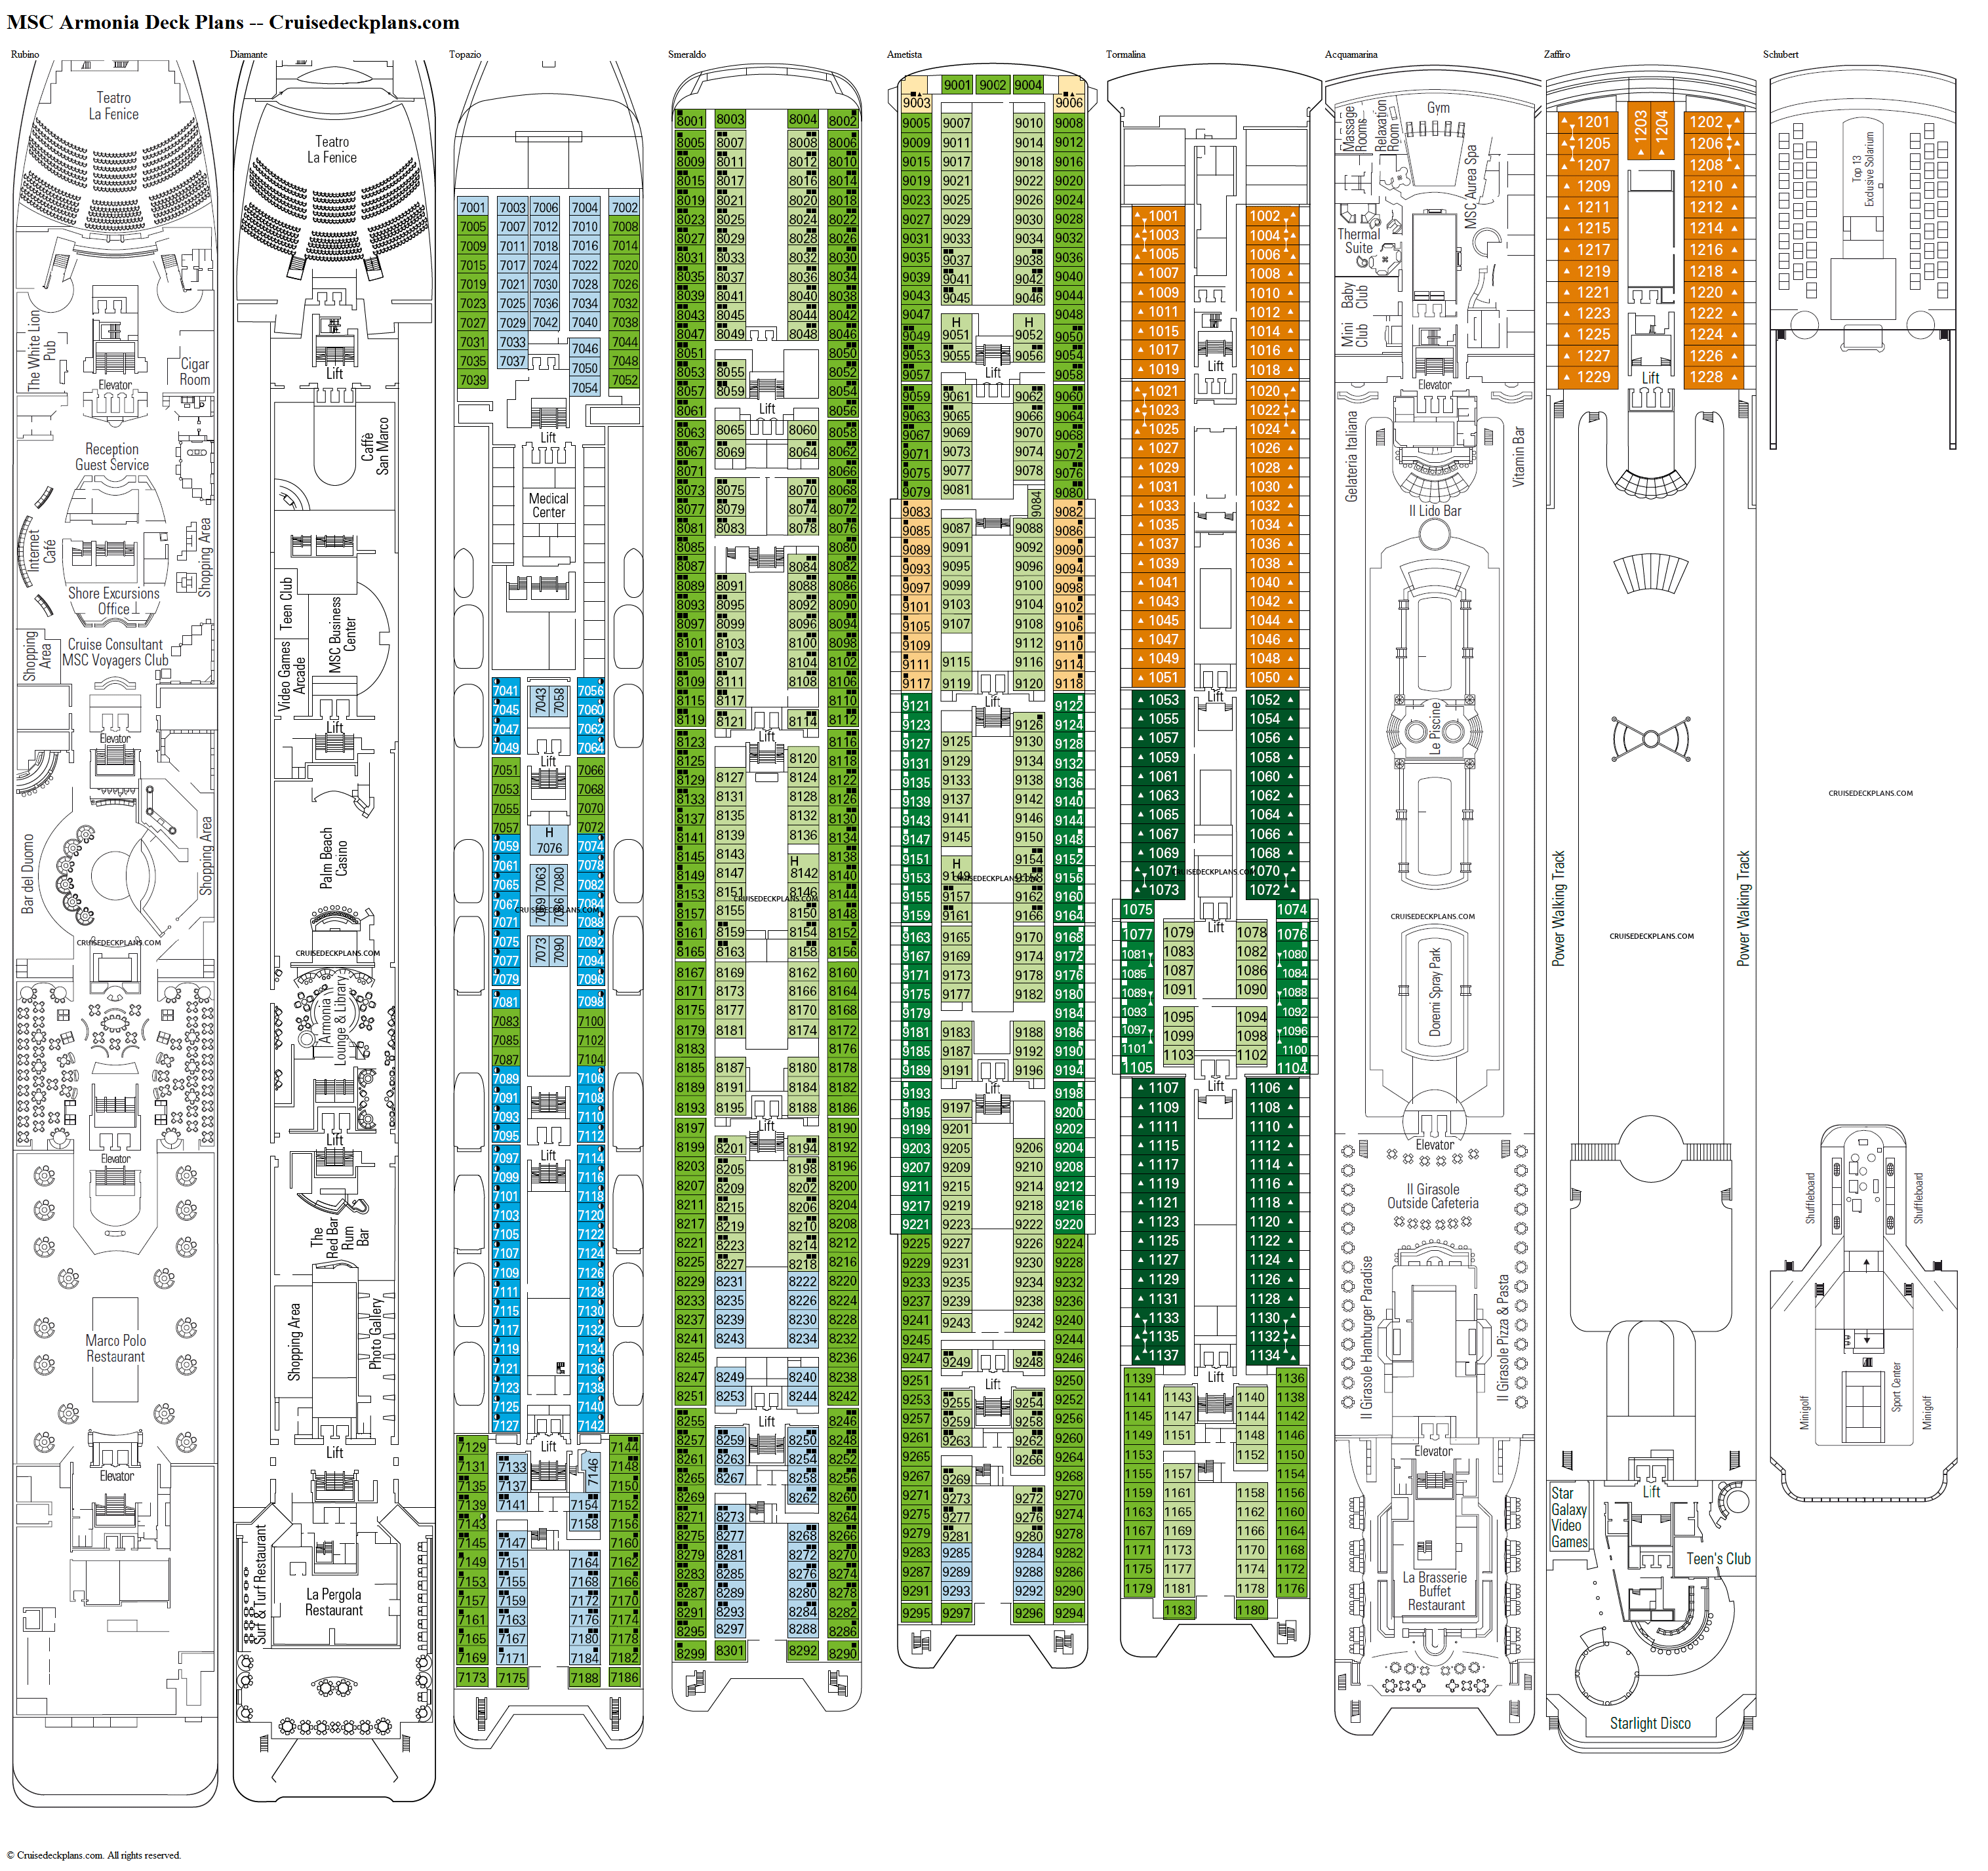 MSC Armonia deck plans image